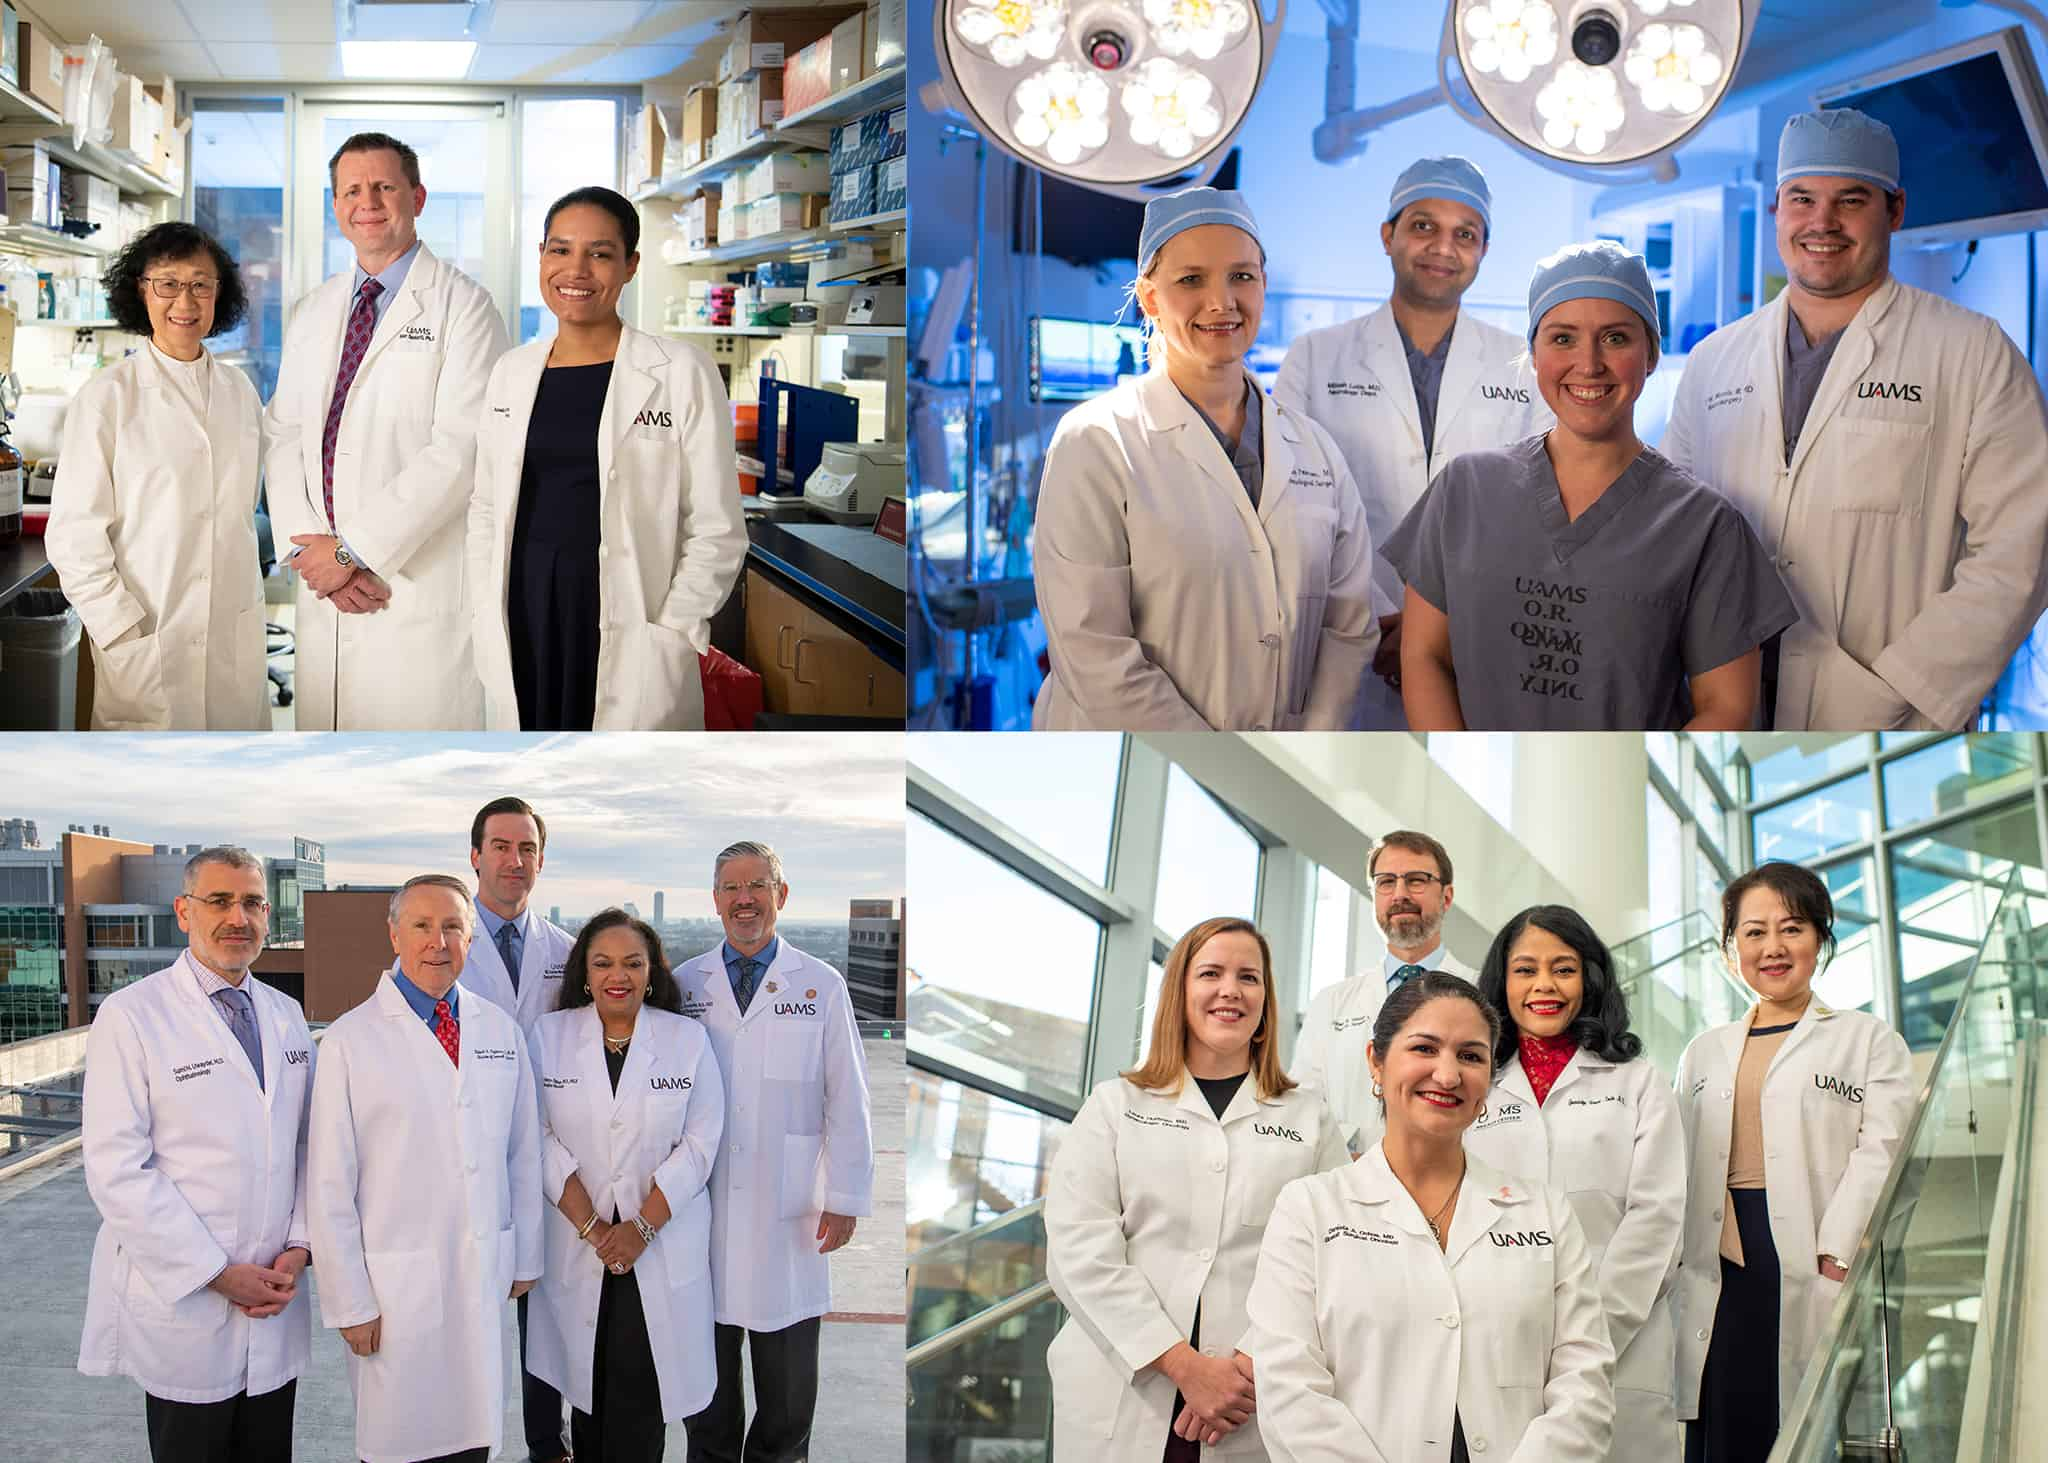 The new television commercials feature members of Team UAMS. The commercials are part of a new UAMS Health advertising campaign that also includes outdoor, print and digital ads.